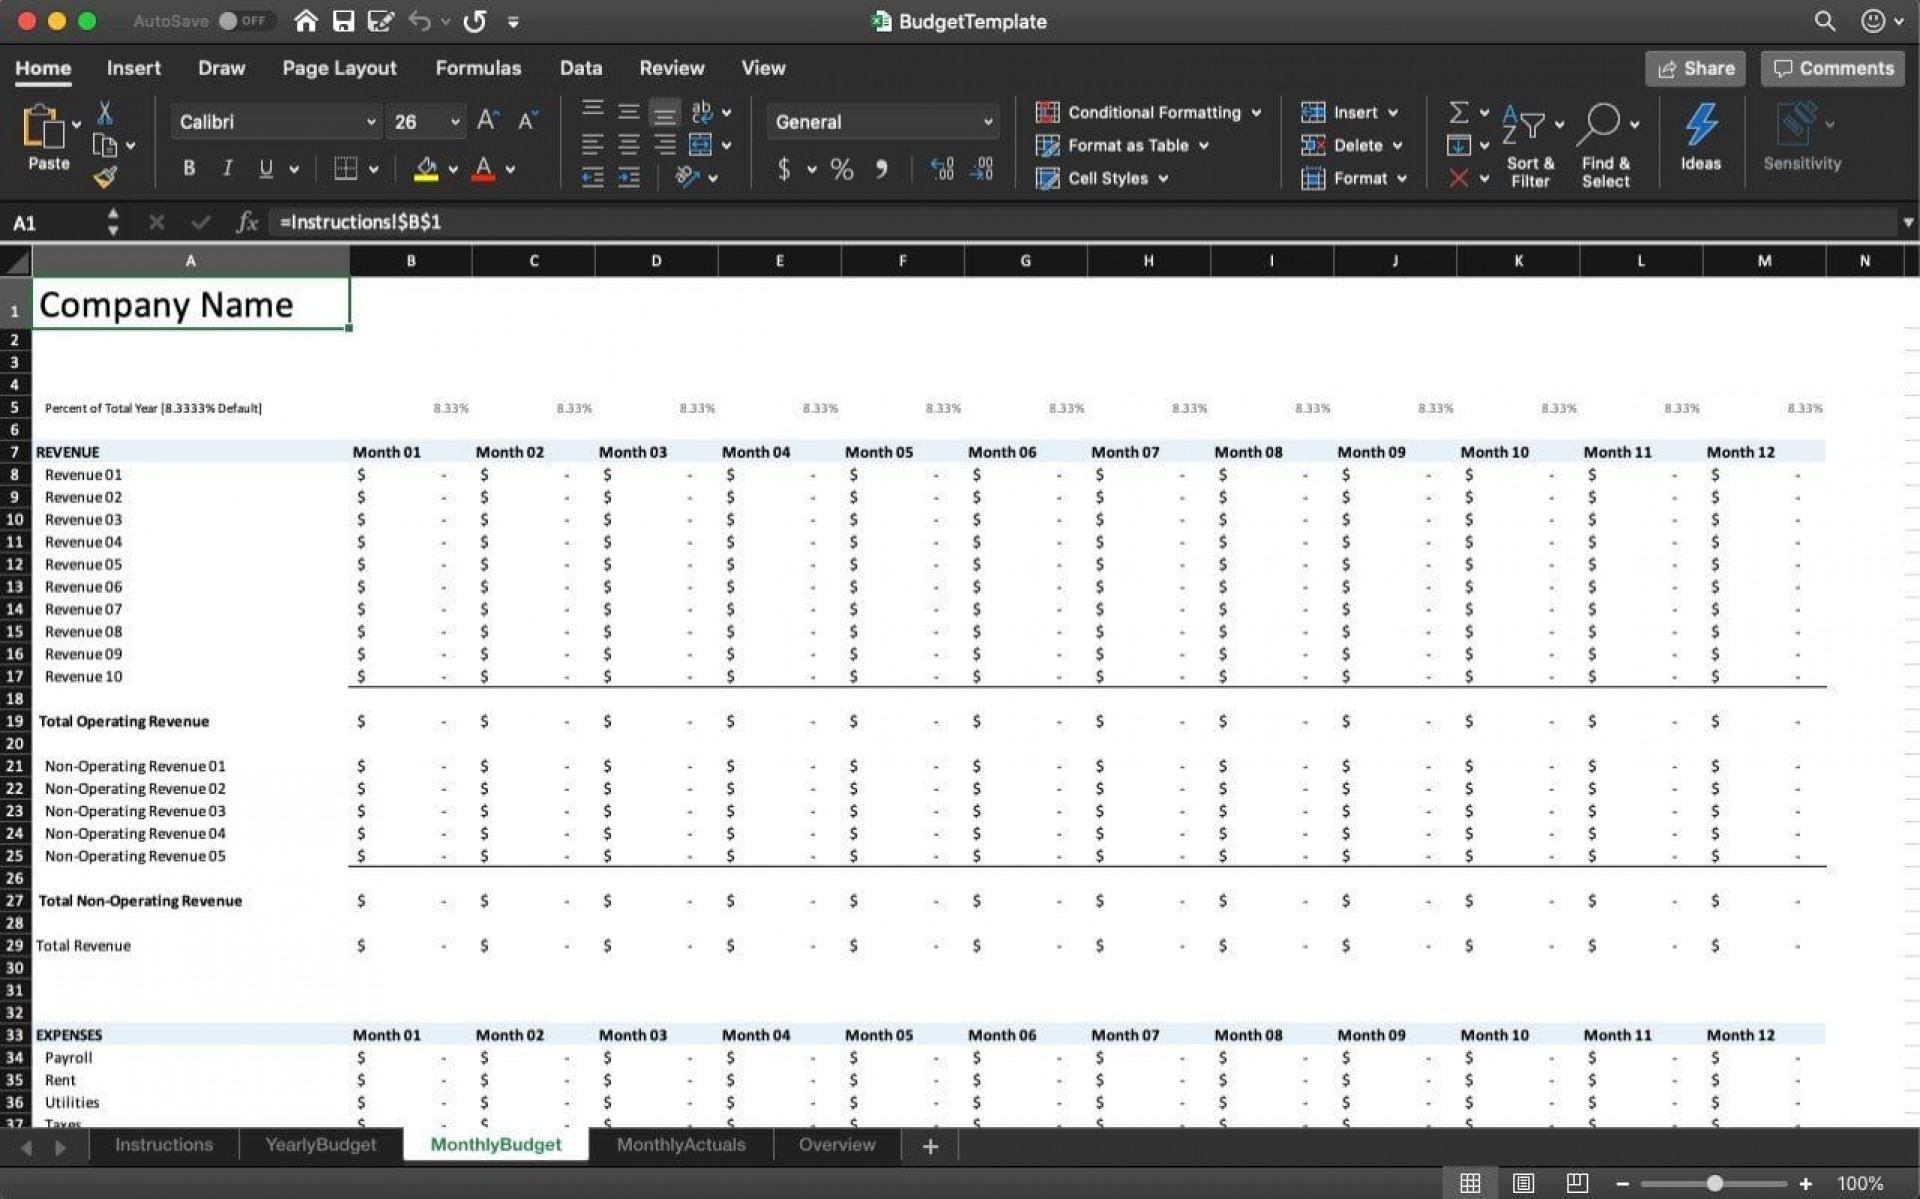 004 Phenomenal Easy Excel Budget Template Free Idea 1920